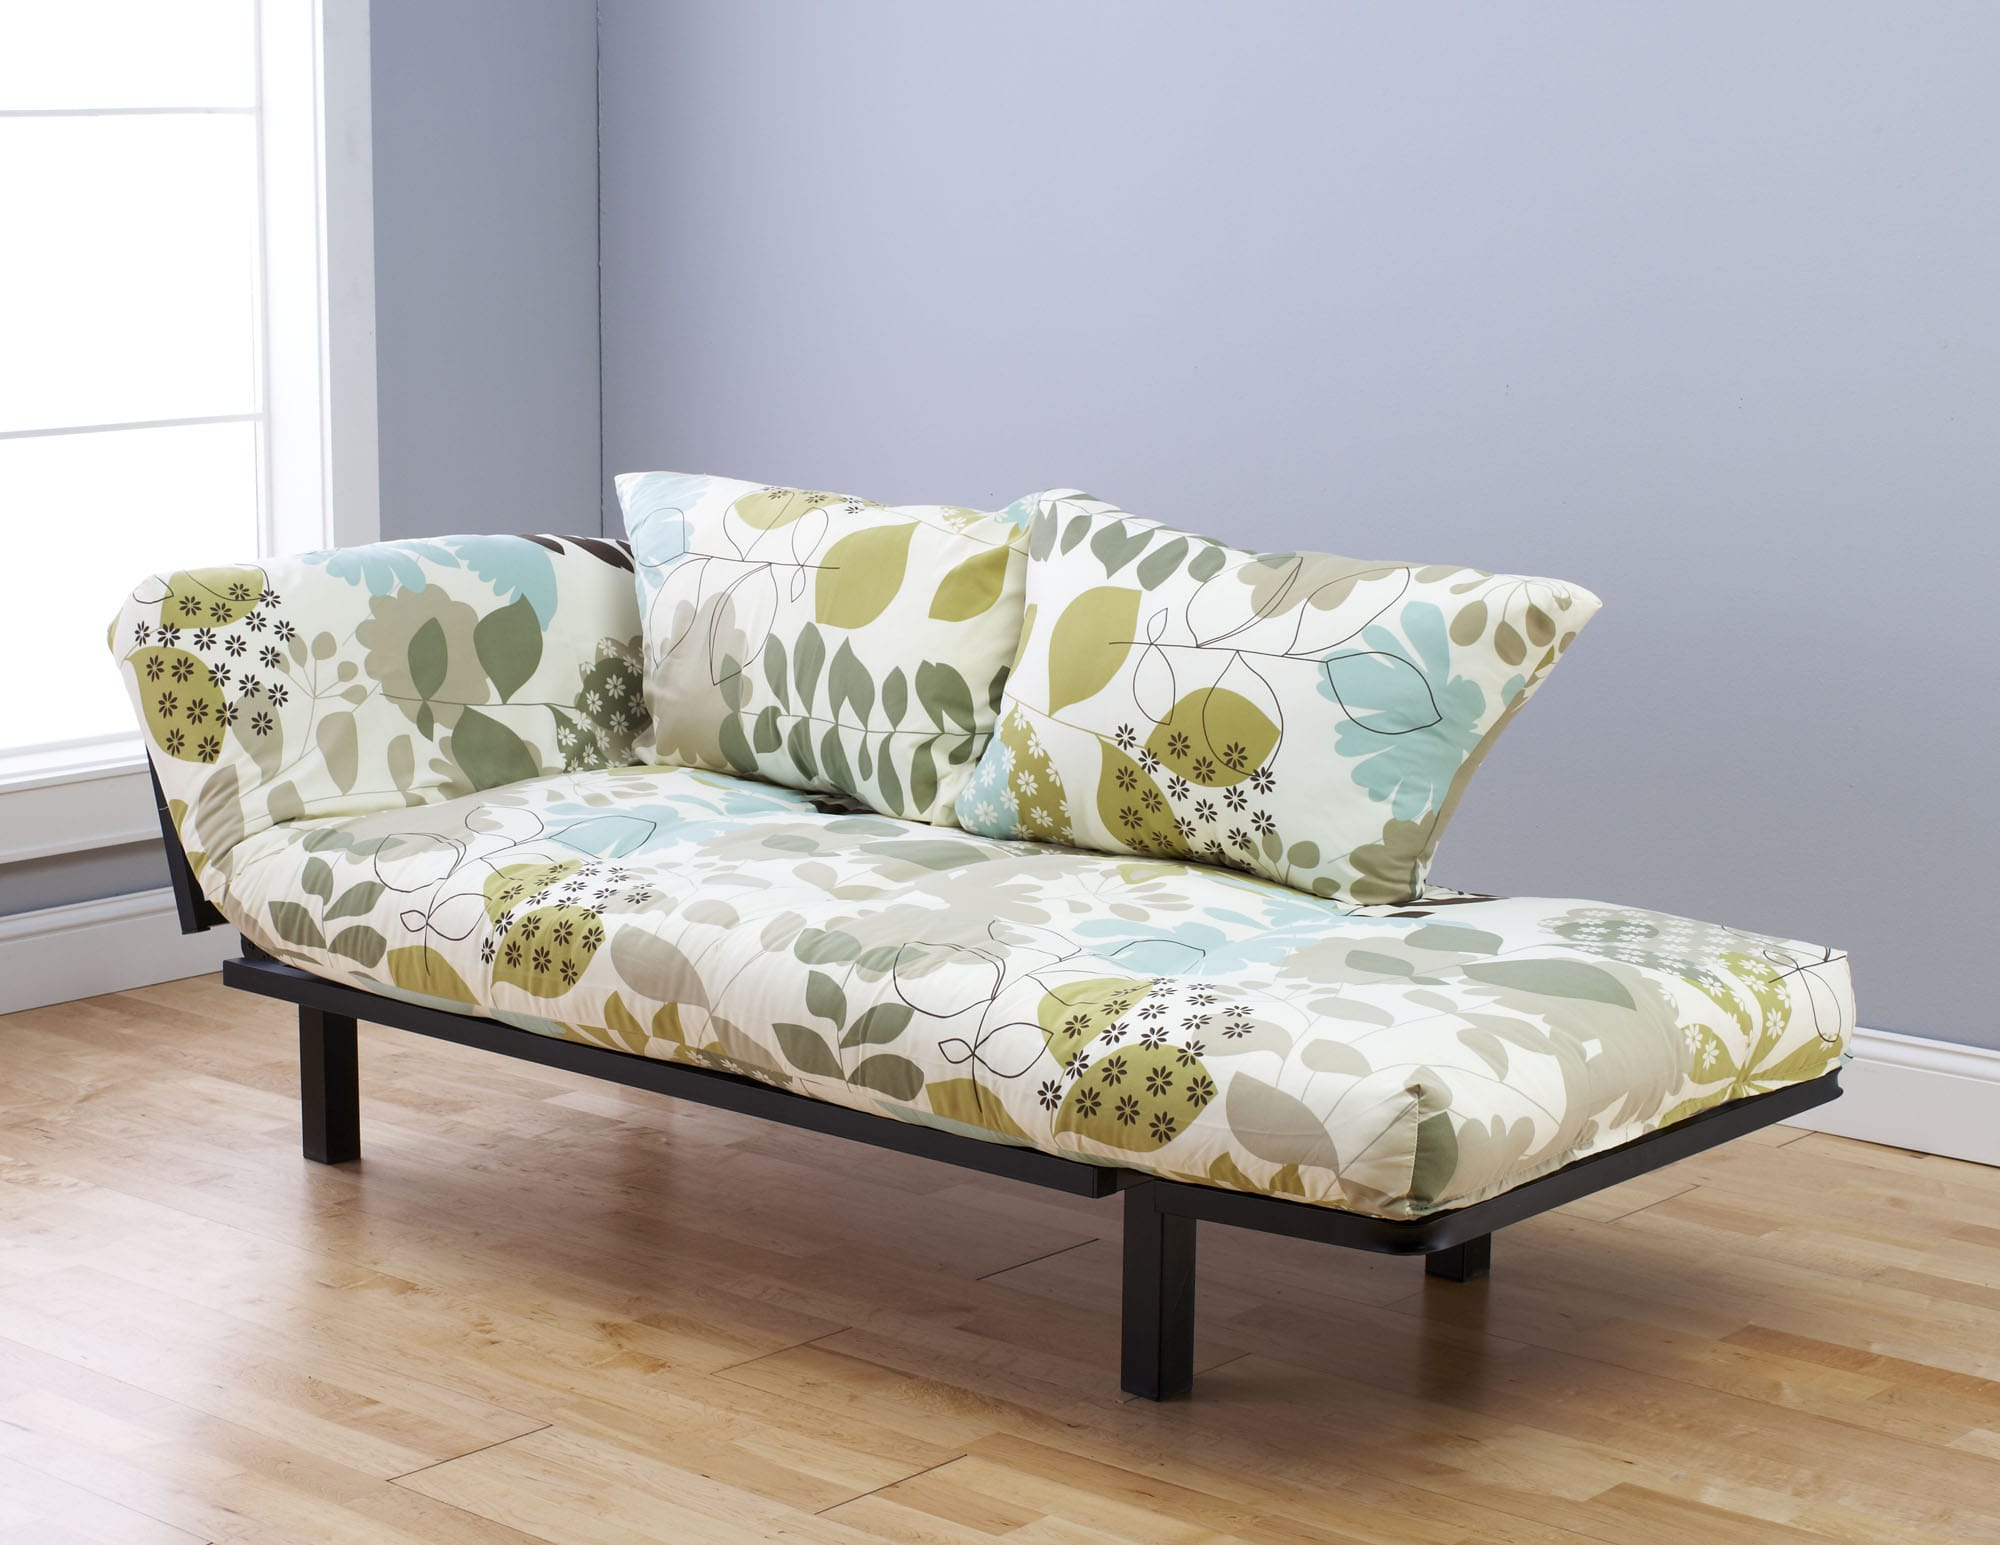 Spacely Futon Daybed Lounger With Mattress English Garden By Kodiak